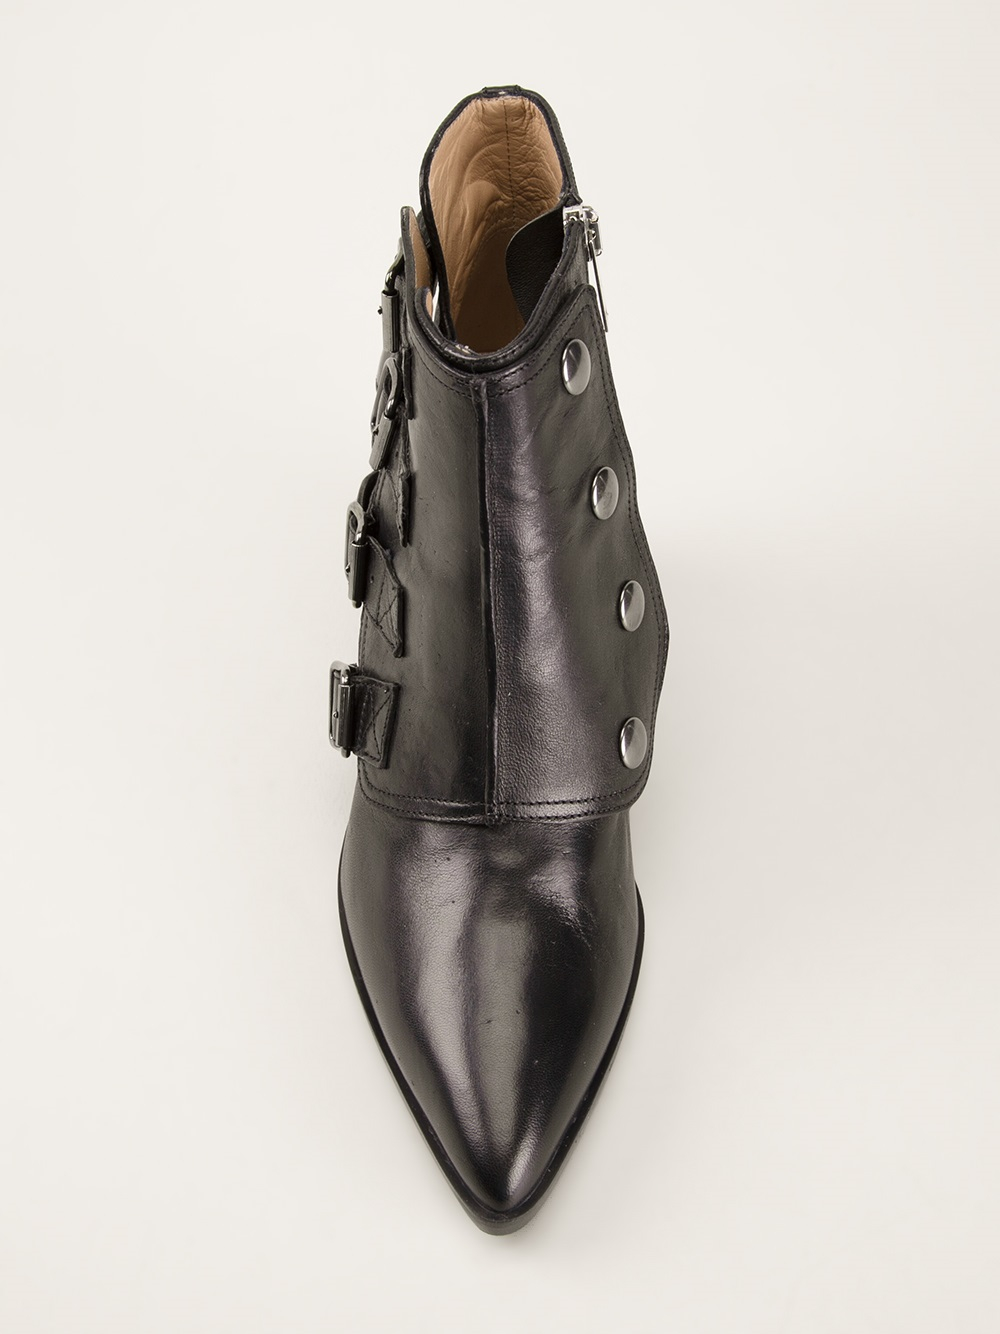 golden goose palm ankle boot | Buying Club NYC